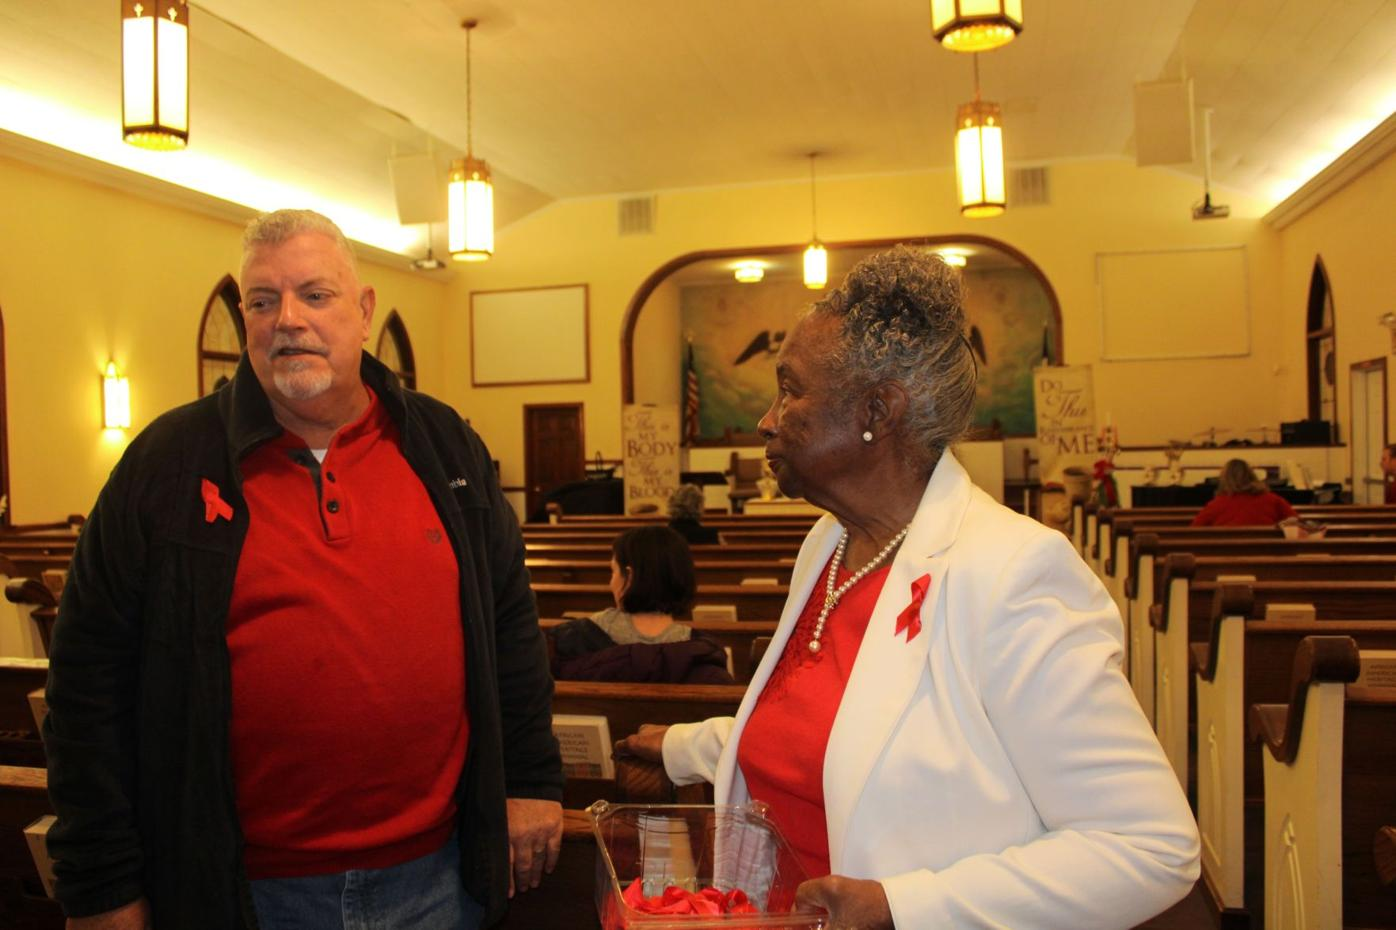 AIDS Resource Council emphasizes the need for community education on World AIDS Day